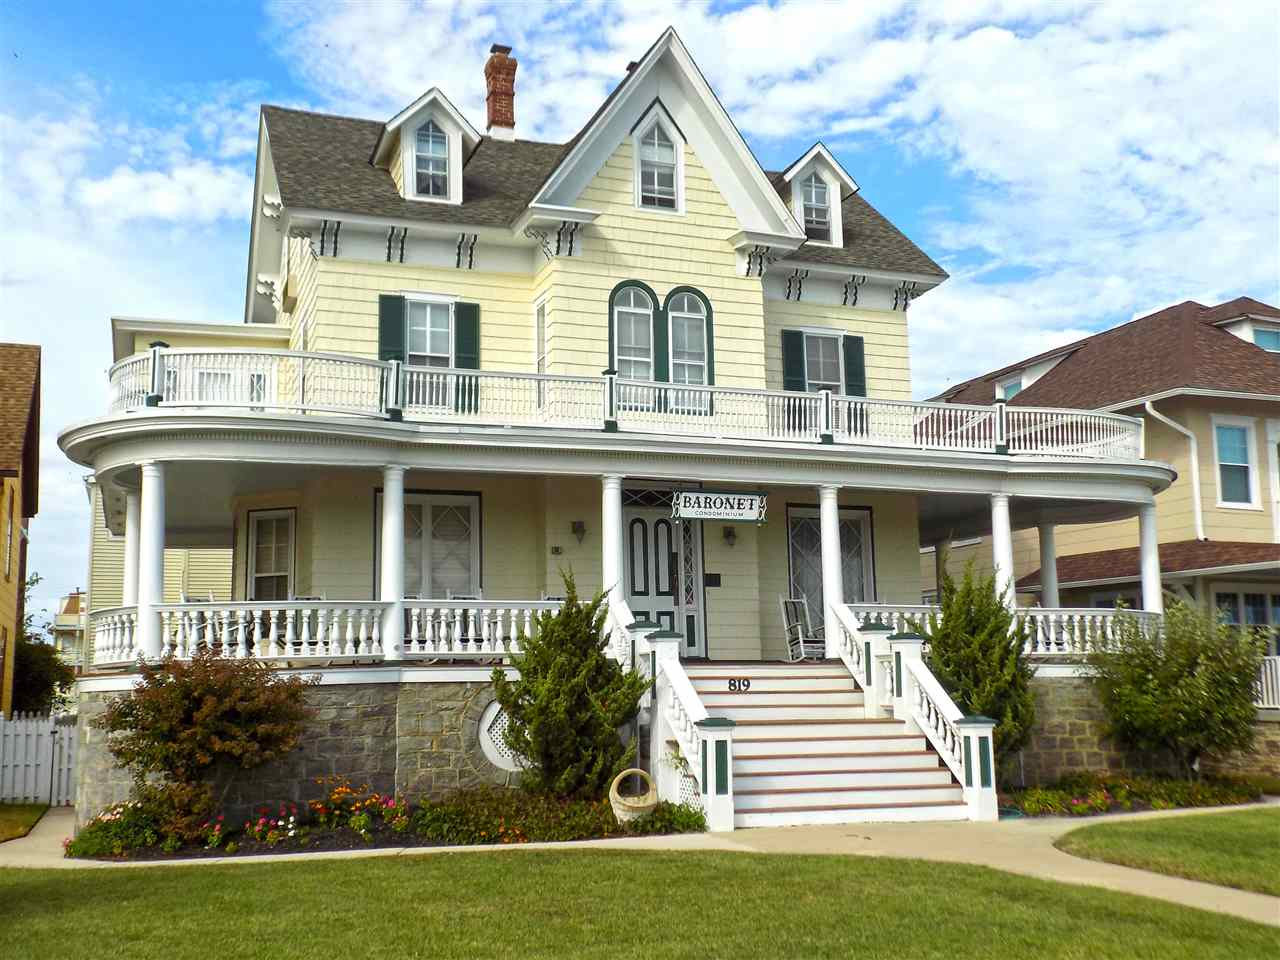 819 Beach Avenue - Cape May